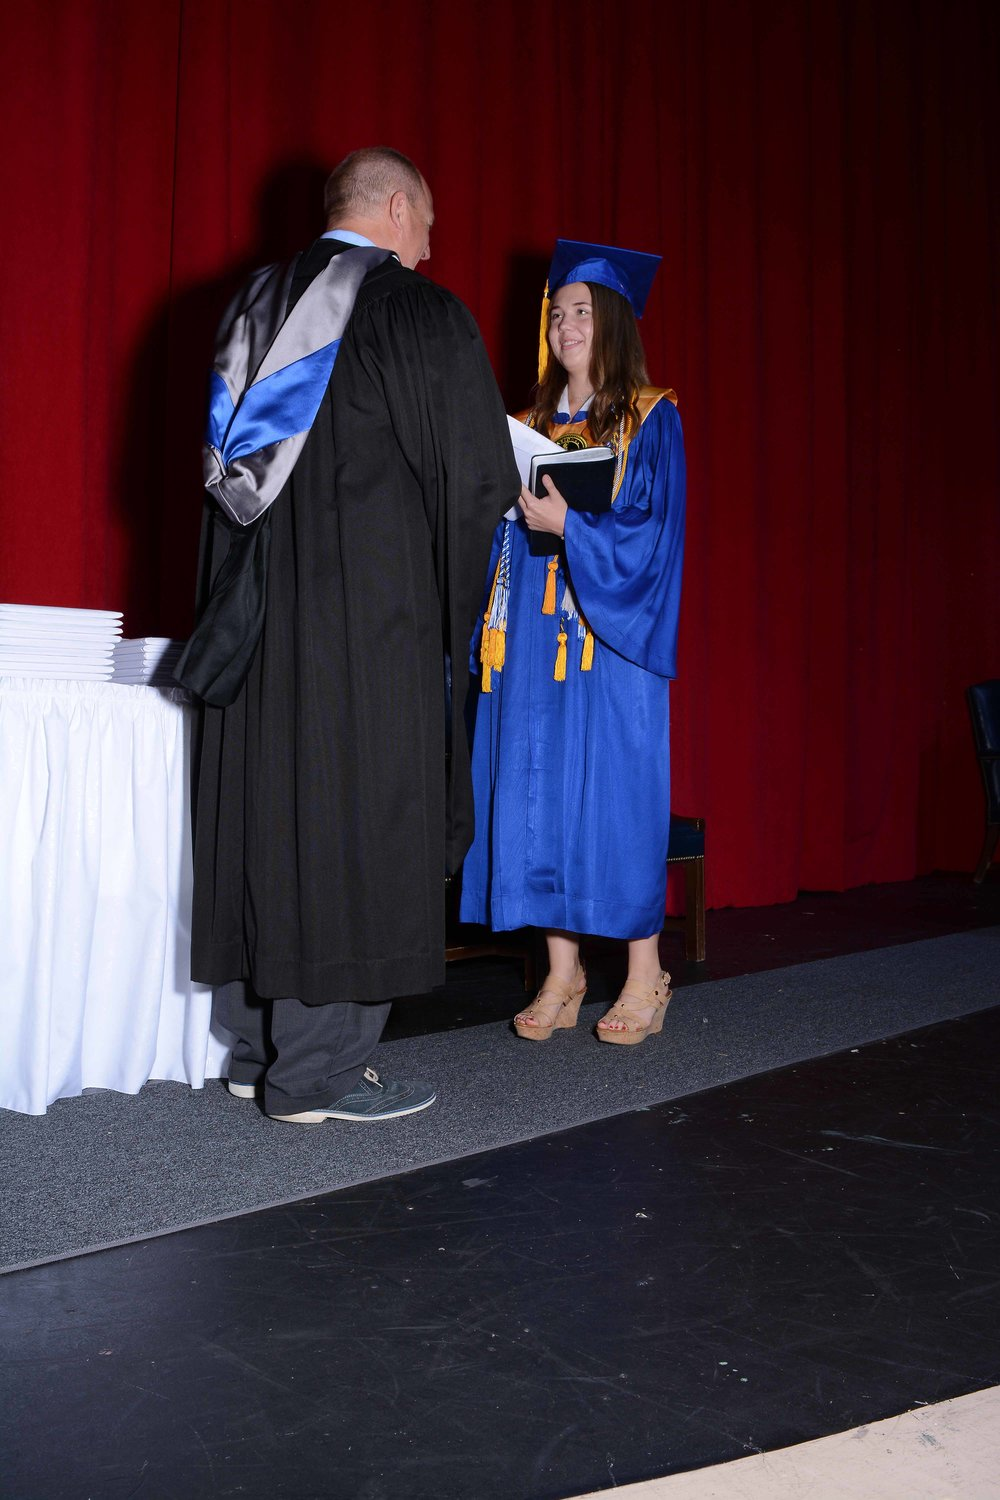 May14 Commencement103.jpg